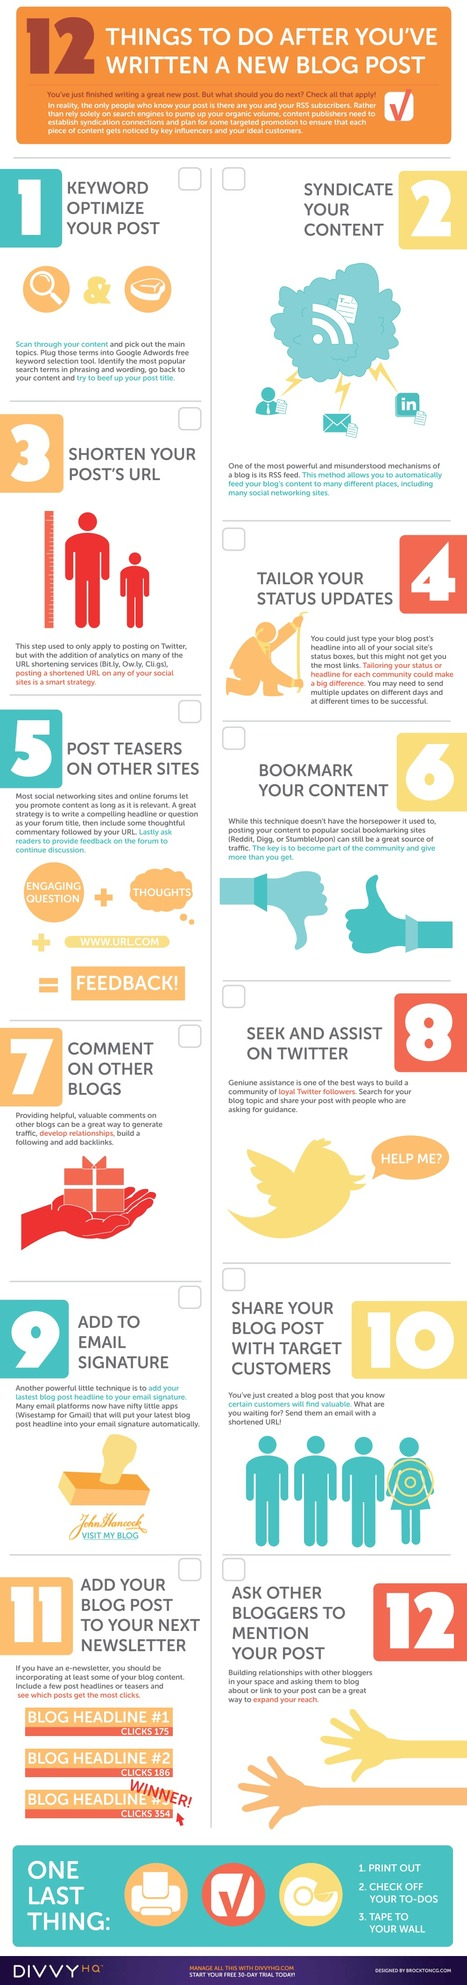 12 Things To Do After You've Published a New Blog Post | Infographic | Nonprofit marketing communications | Scoop.it